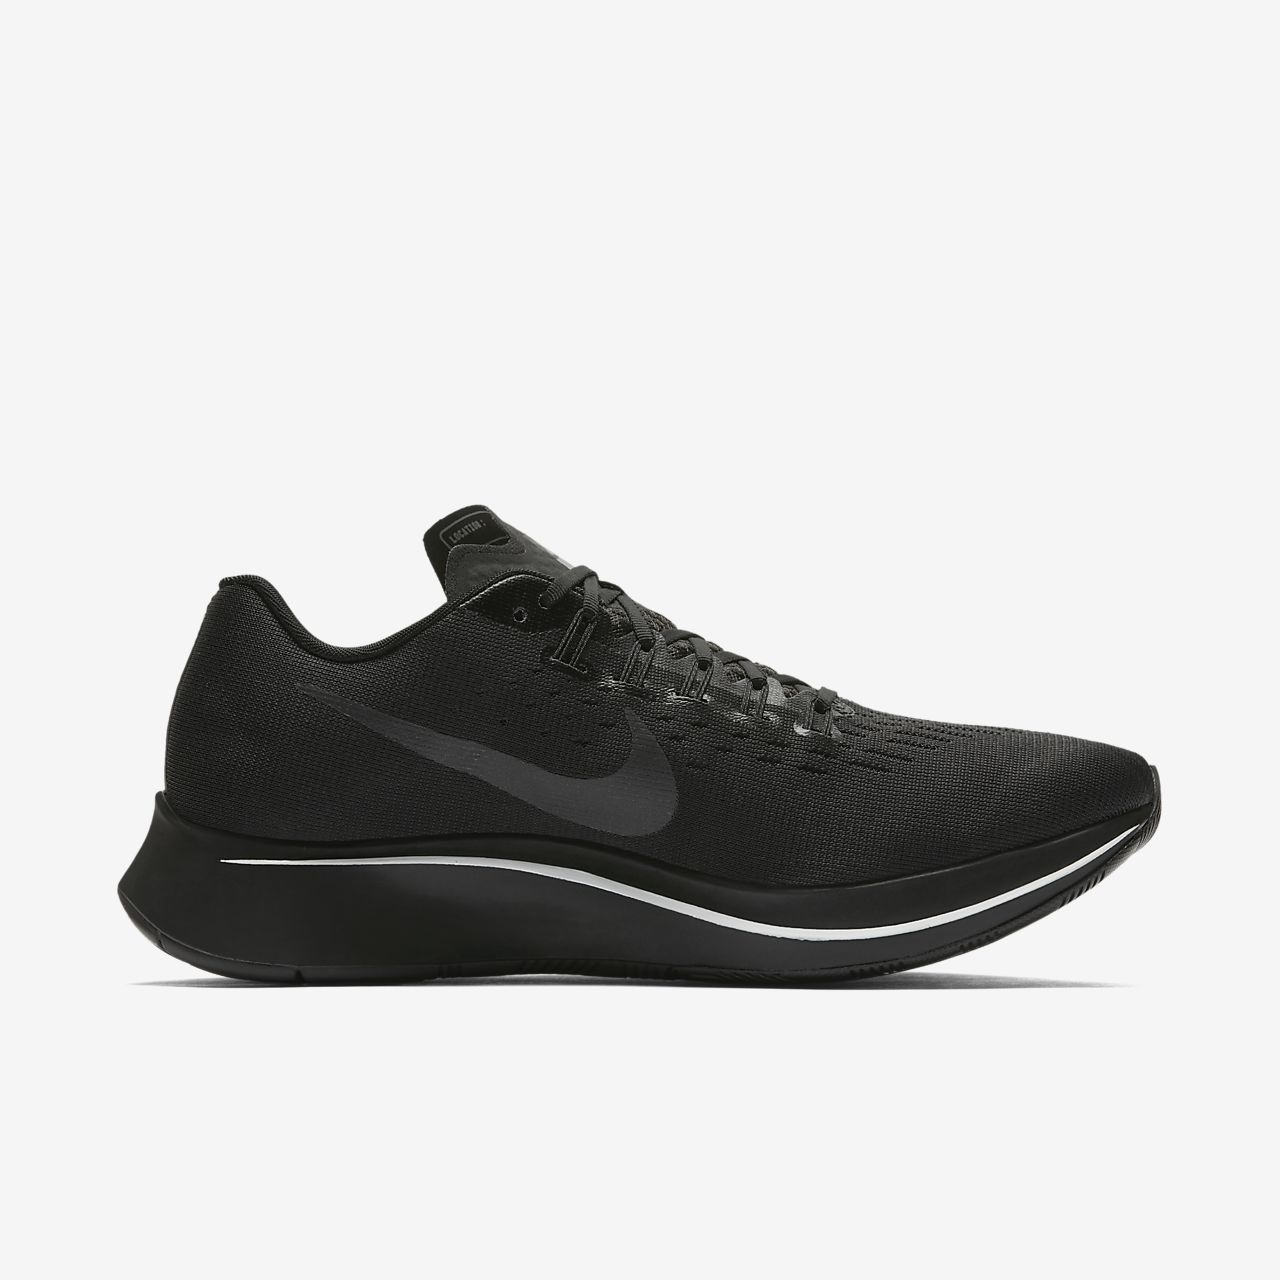 on sale 2b186 ac666 scarpa da running nike zoom fly nero pure platinum anthracite nero bq7212- 001